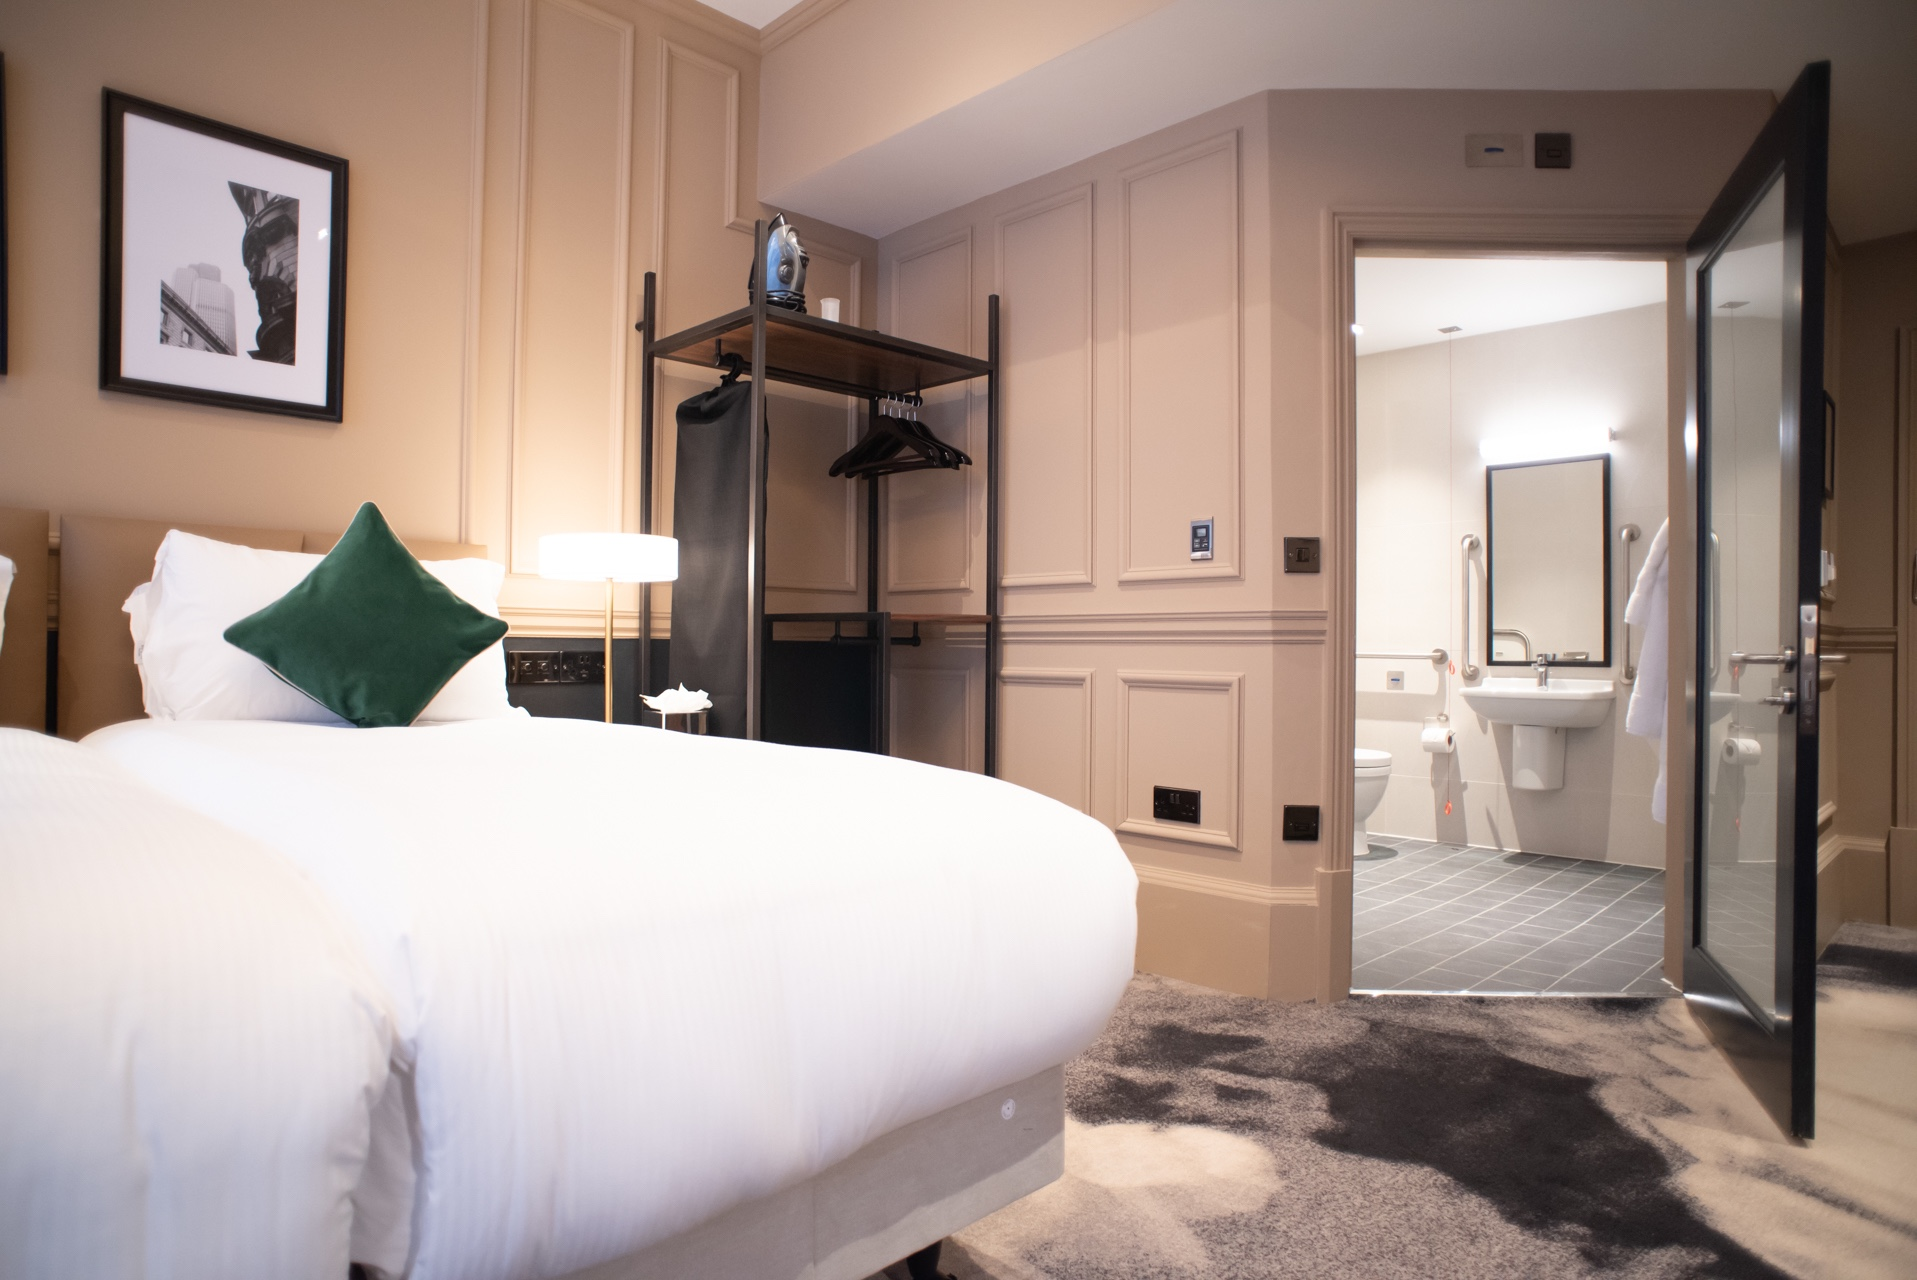 Hotel In Bank | The Counting House | Fuller's Pub With Rooms